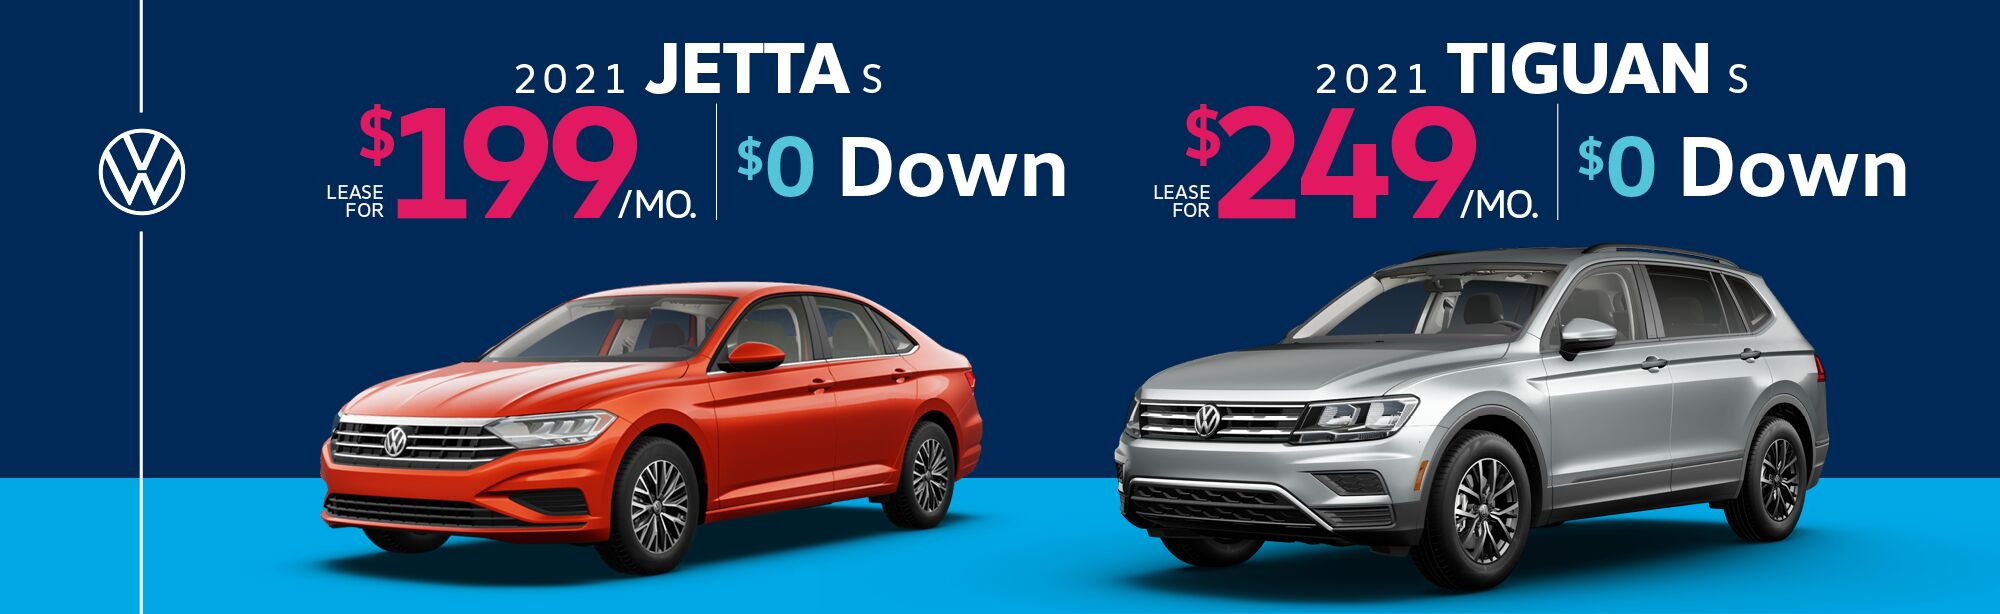 a-may-zing jetta/ tiguan